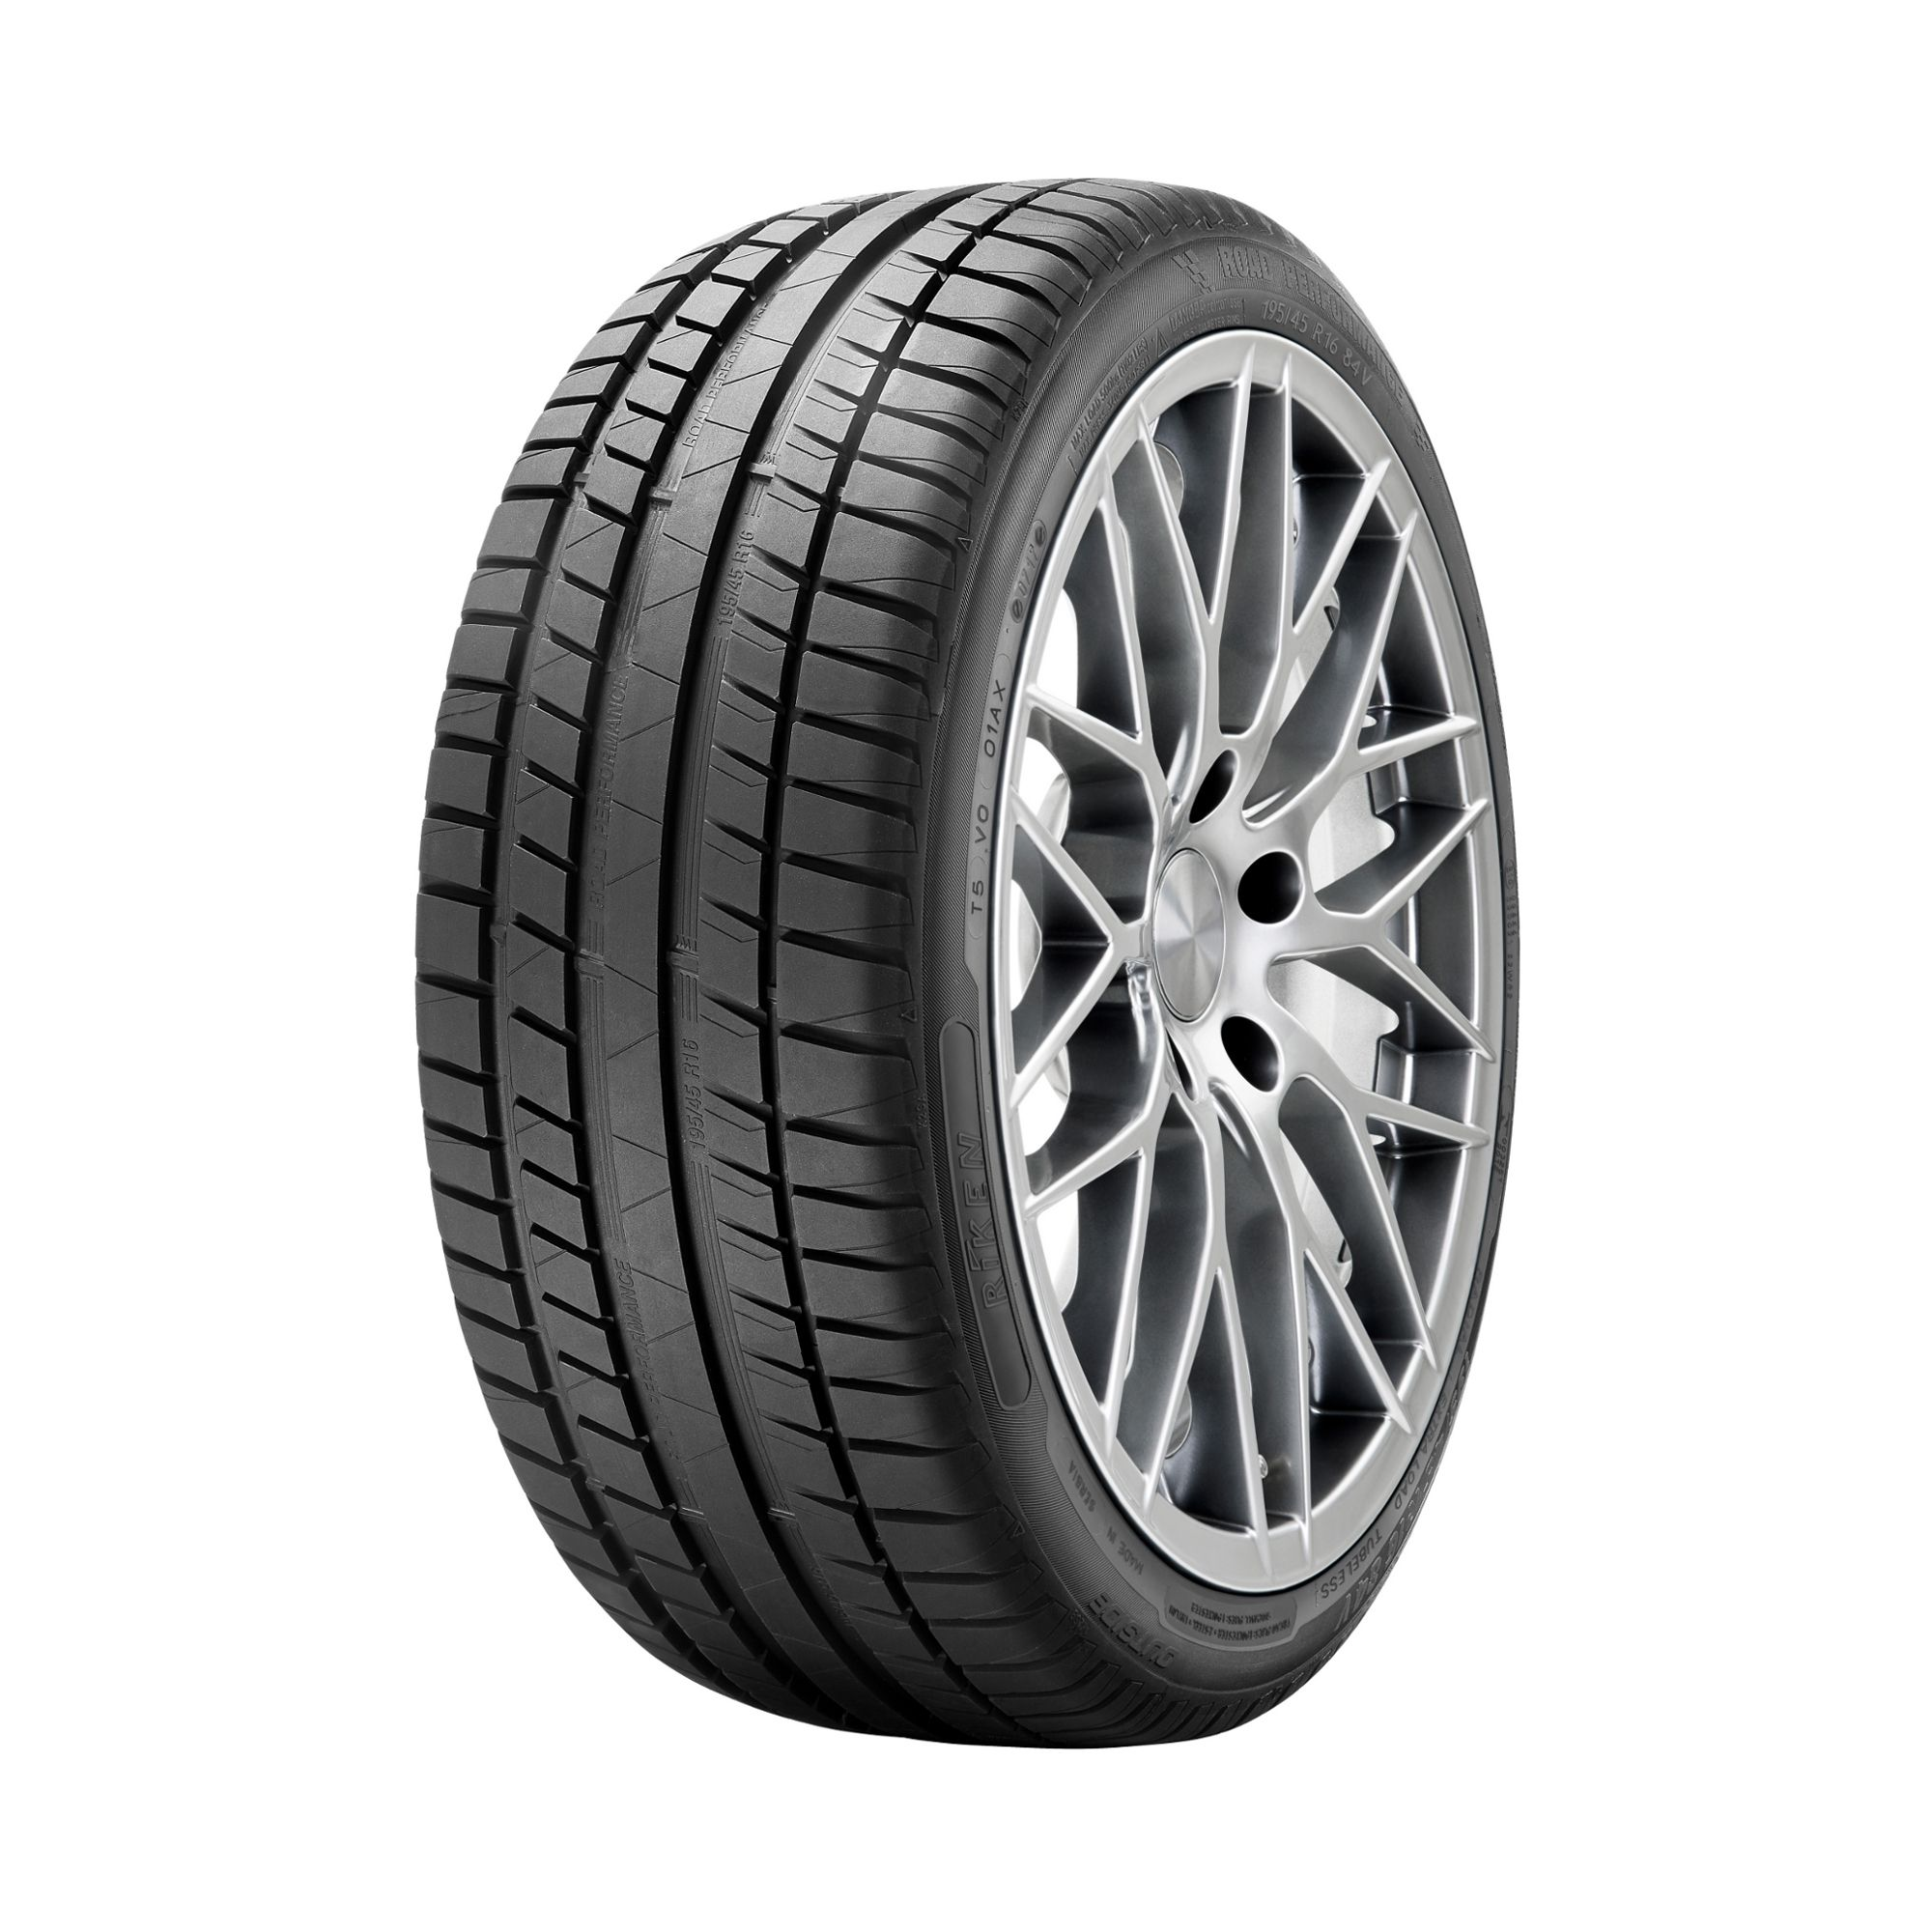 Anvelopa vara RIKEN Road Performance(by Michelin) 195/60 R15 88V